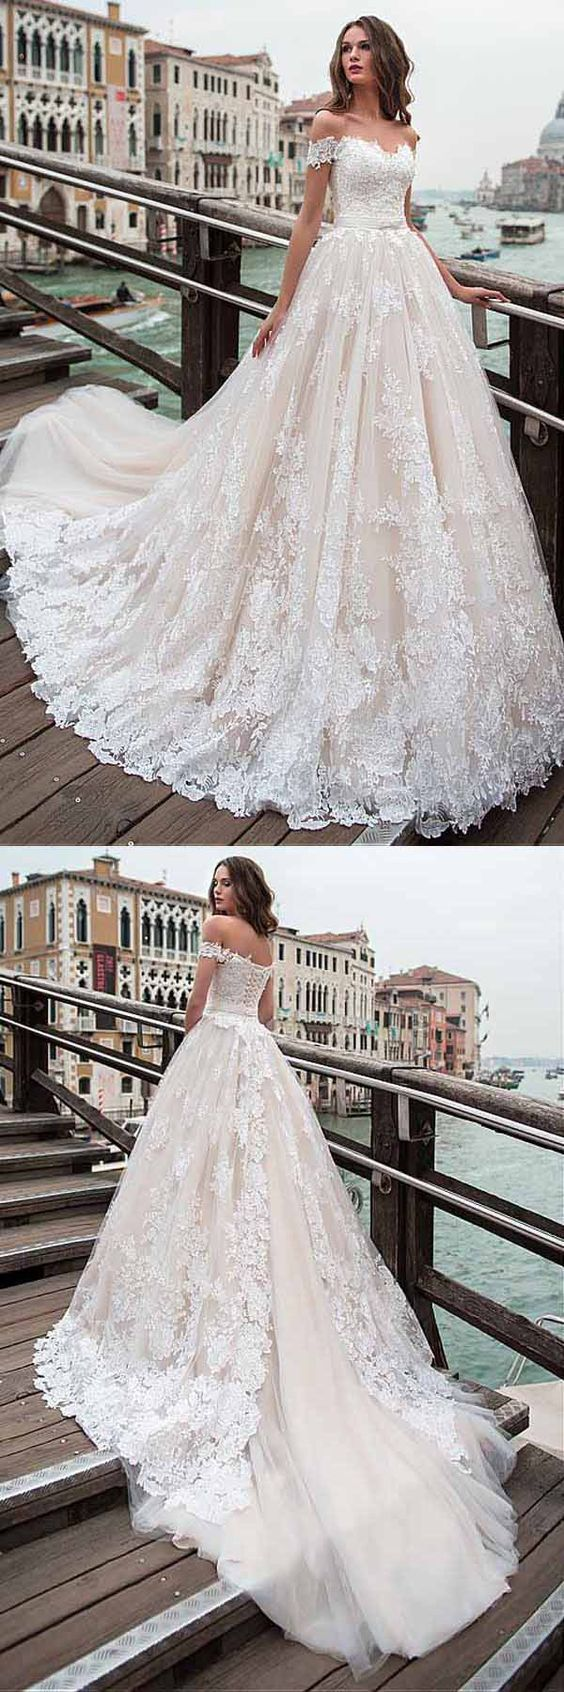 Whats my wedding dress style  Offtheshoulder Neckline Aline Wedding Dress With Lace Appliques